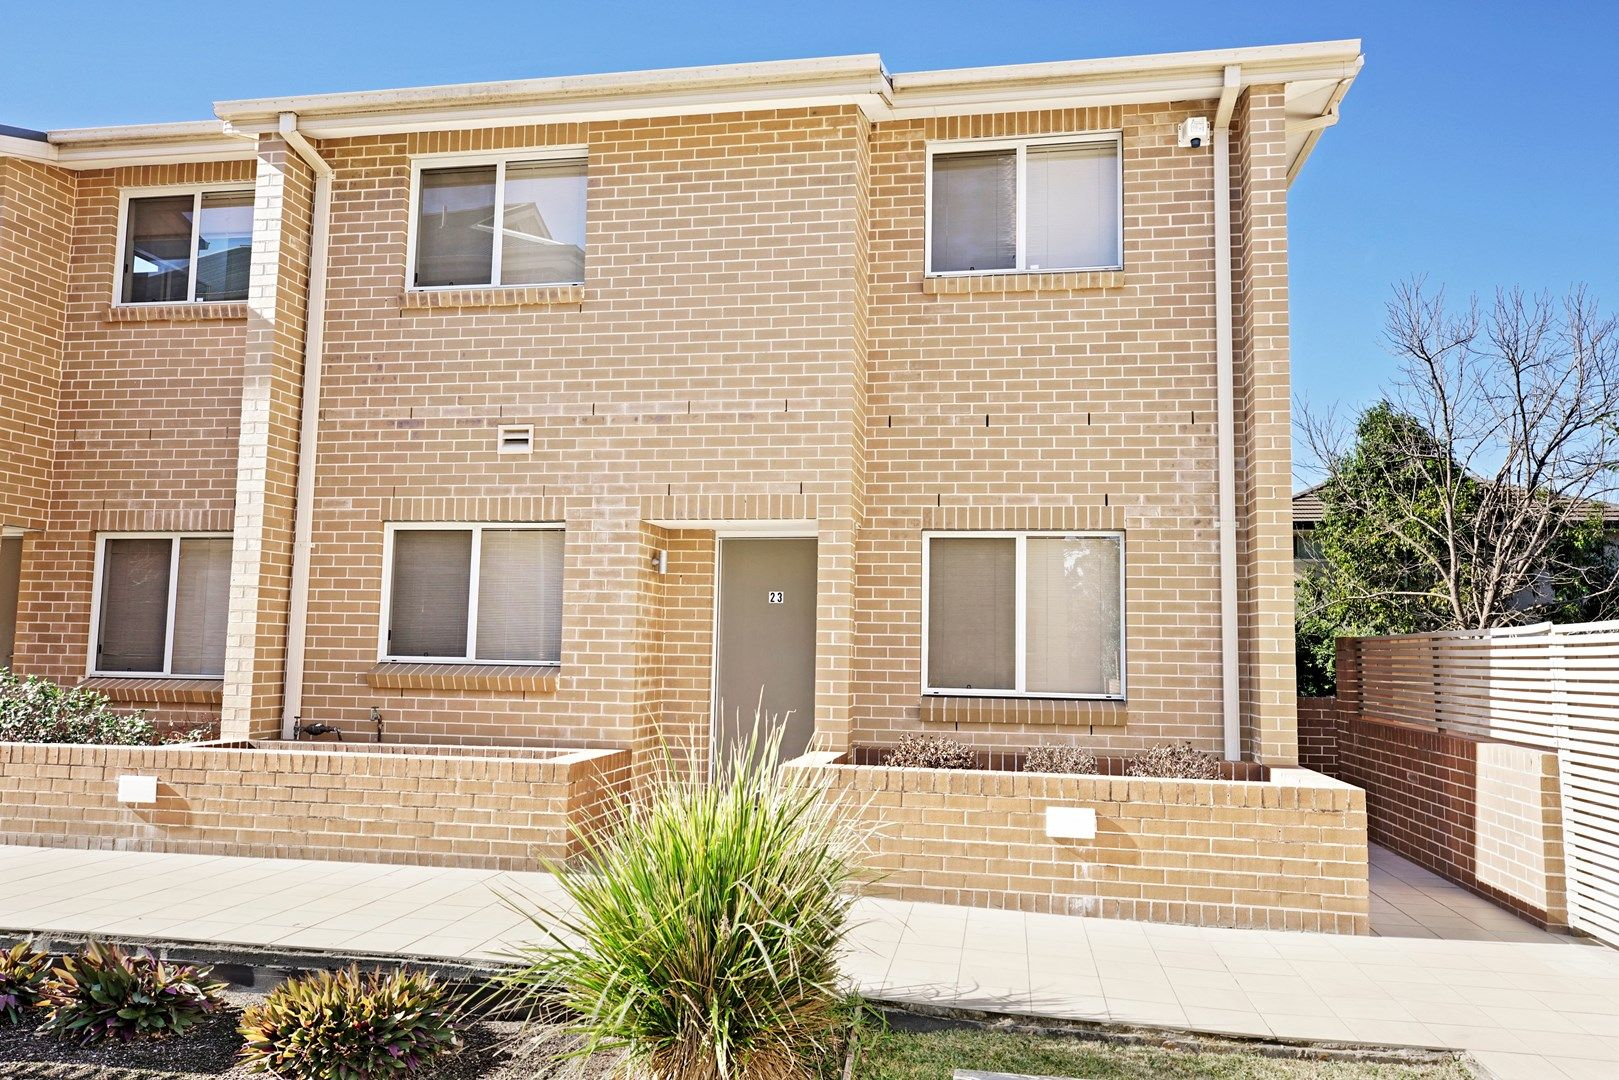 23/21-25 Orth Street, Kingswood NSW 2747, Image 0